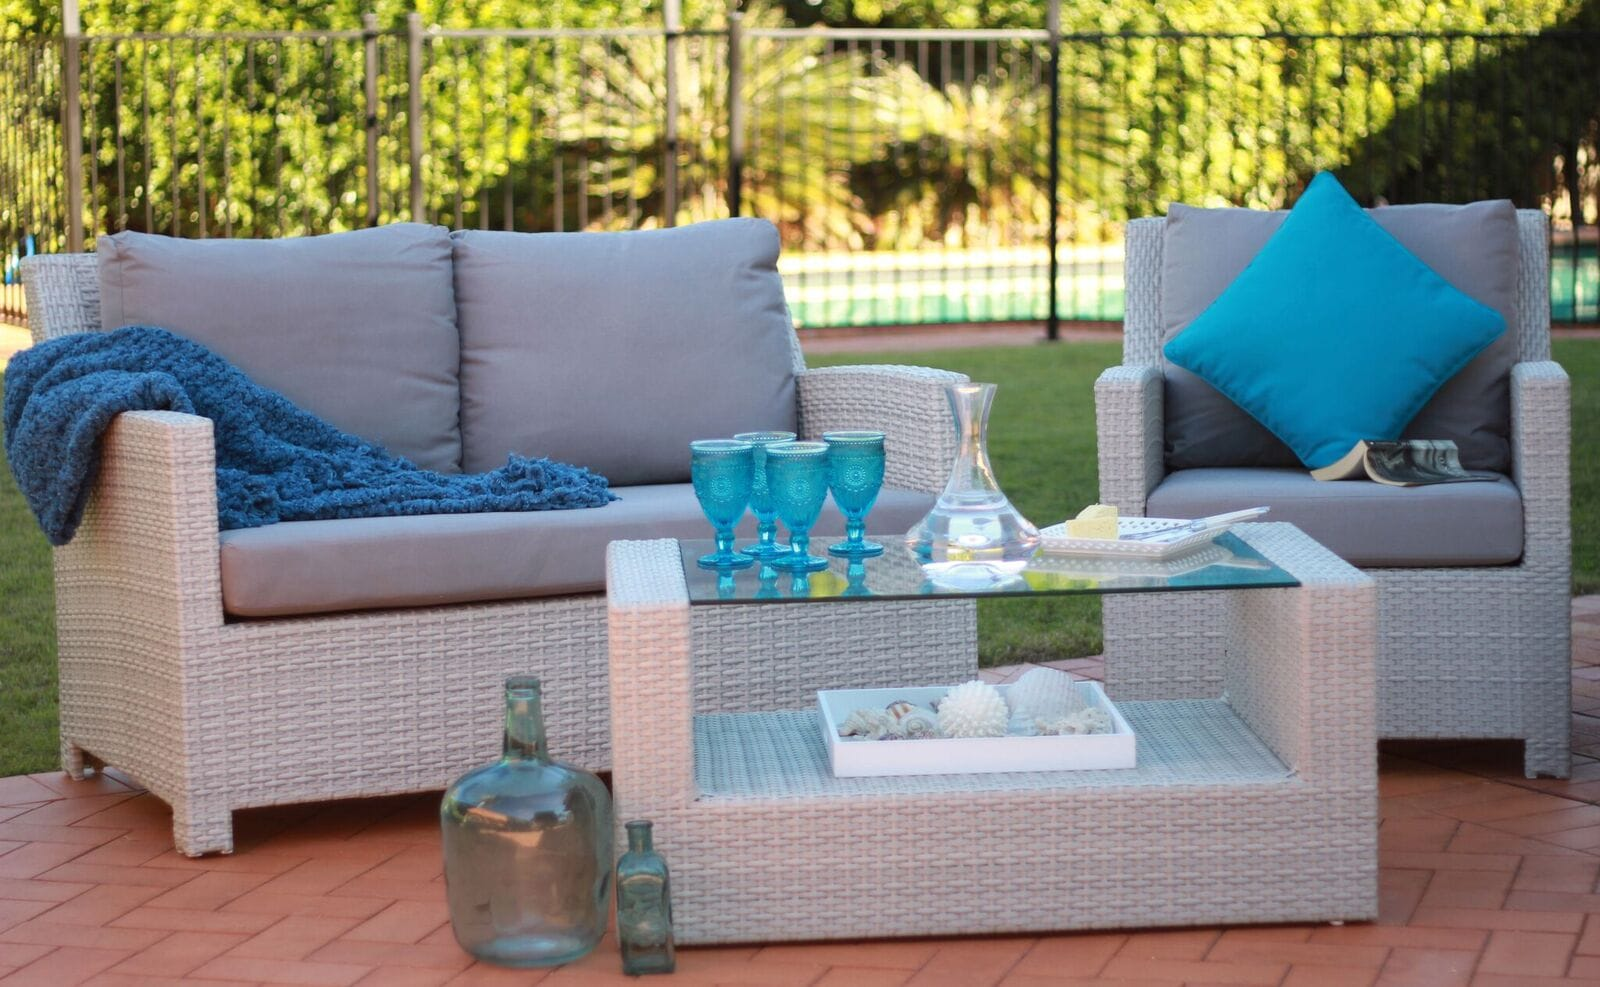 outdoor furniture for all occasions - Garden Furniture 4 U Ltd